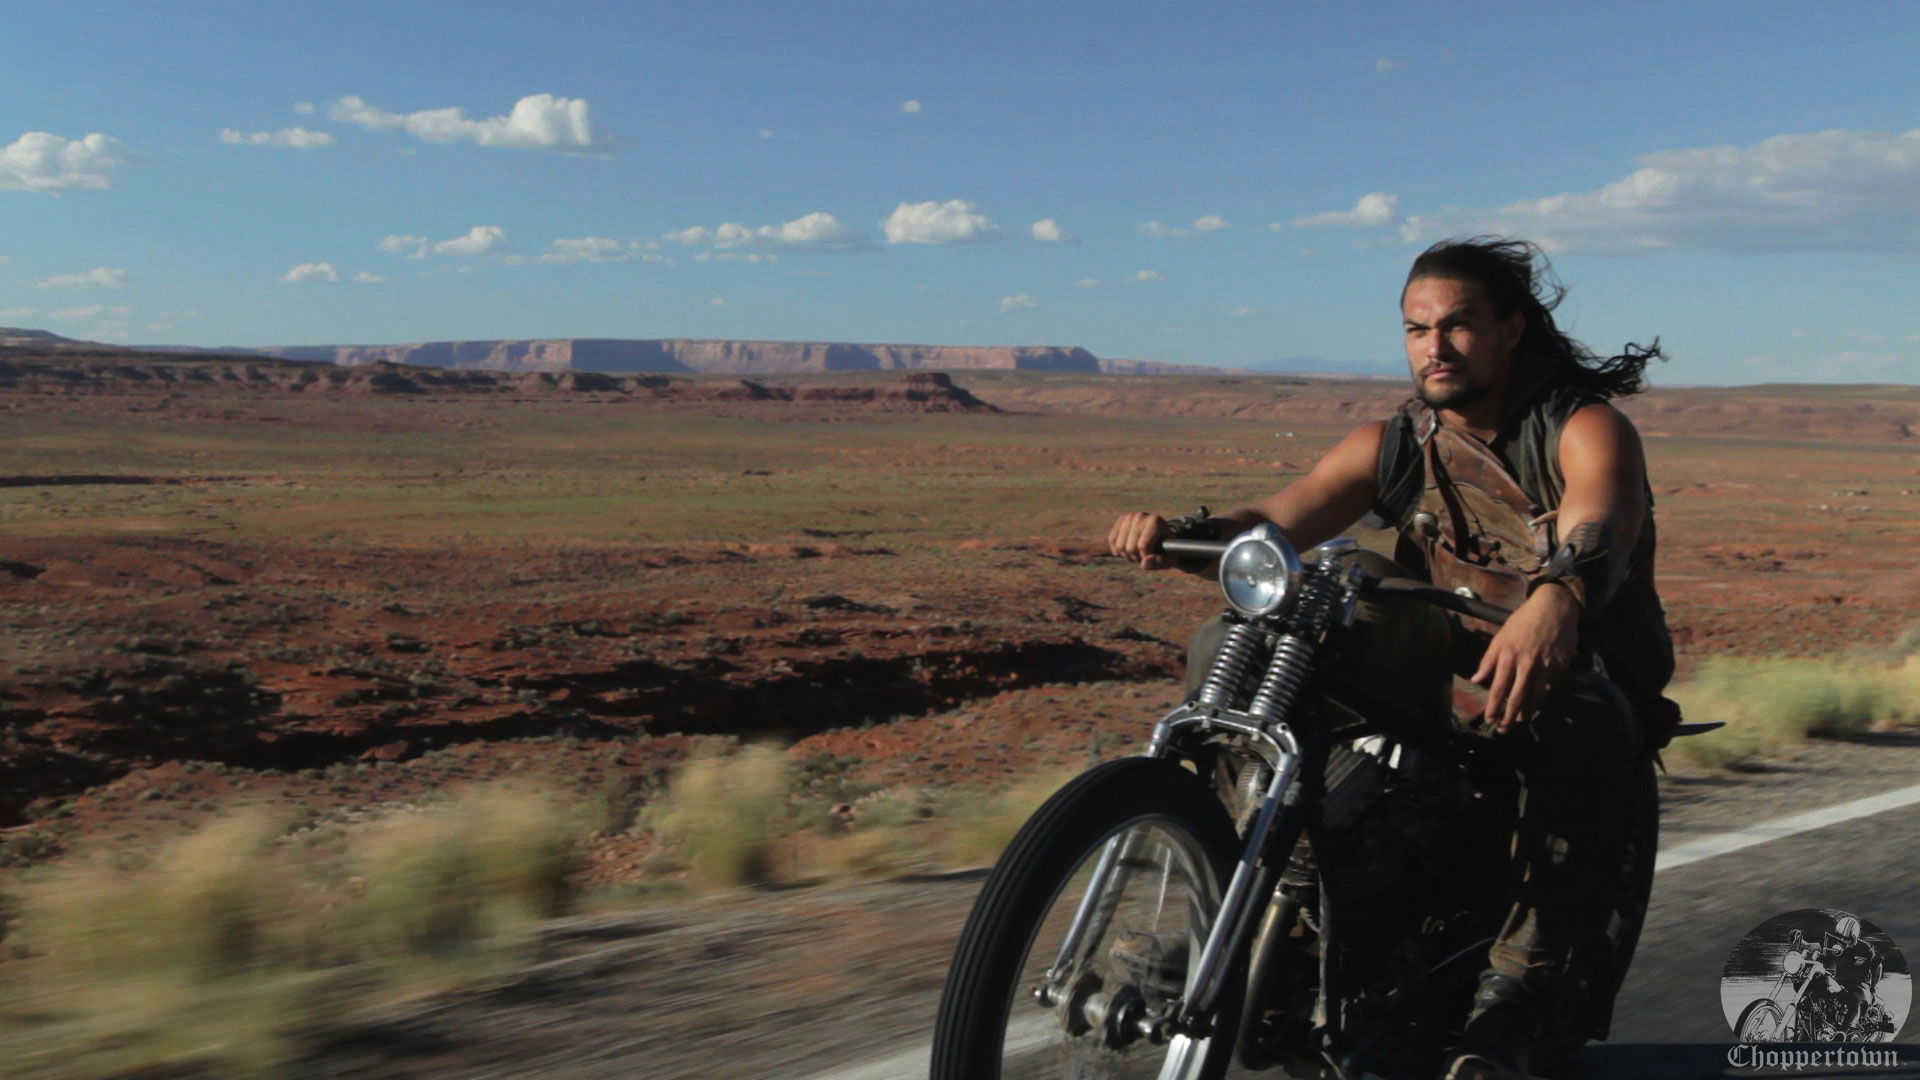 Bikers Quotes Hd Wallpapers The Road To Paloma Movie Bike Interview With Jason Momoa